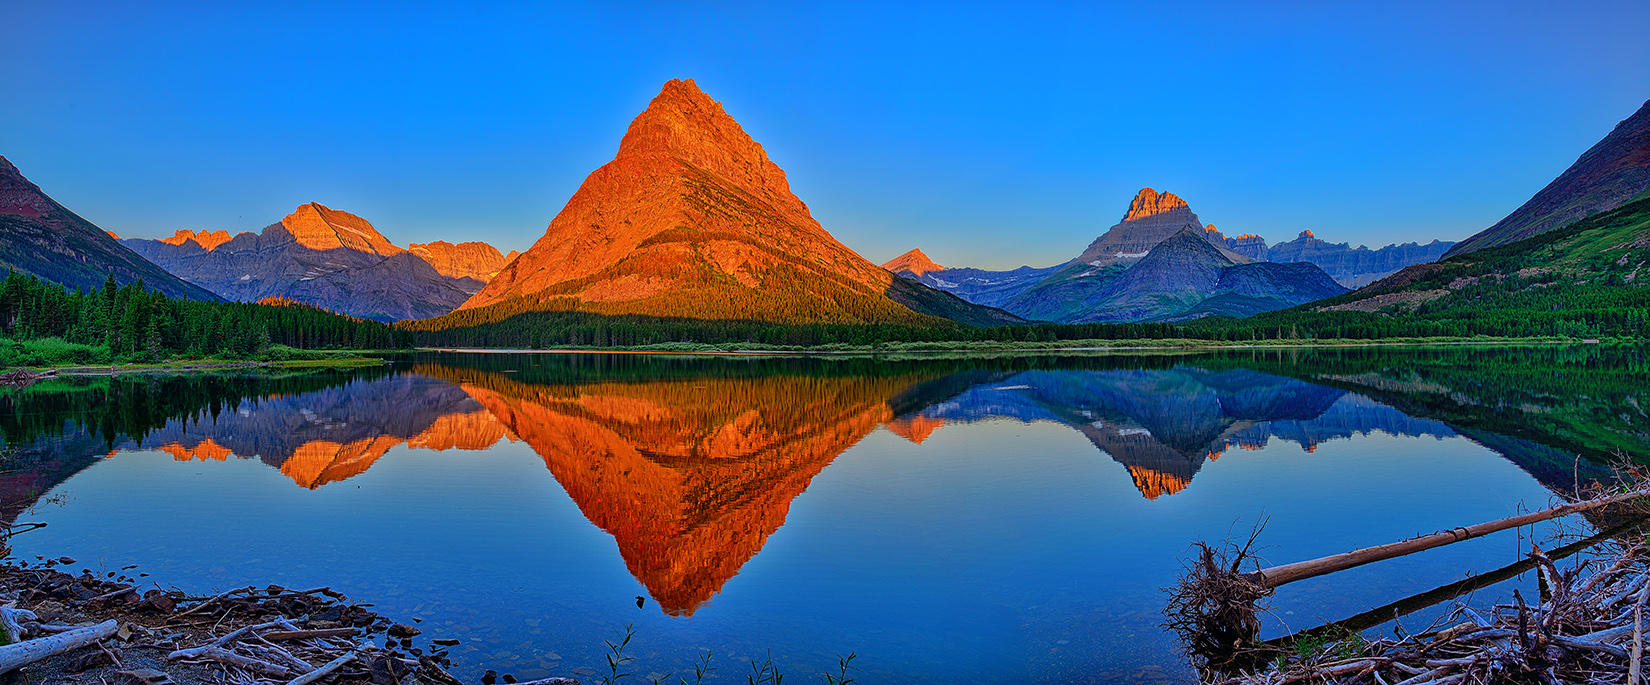 Grinnell Point Alpenglow Panorama